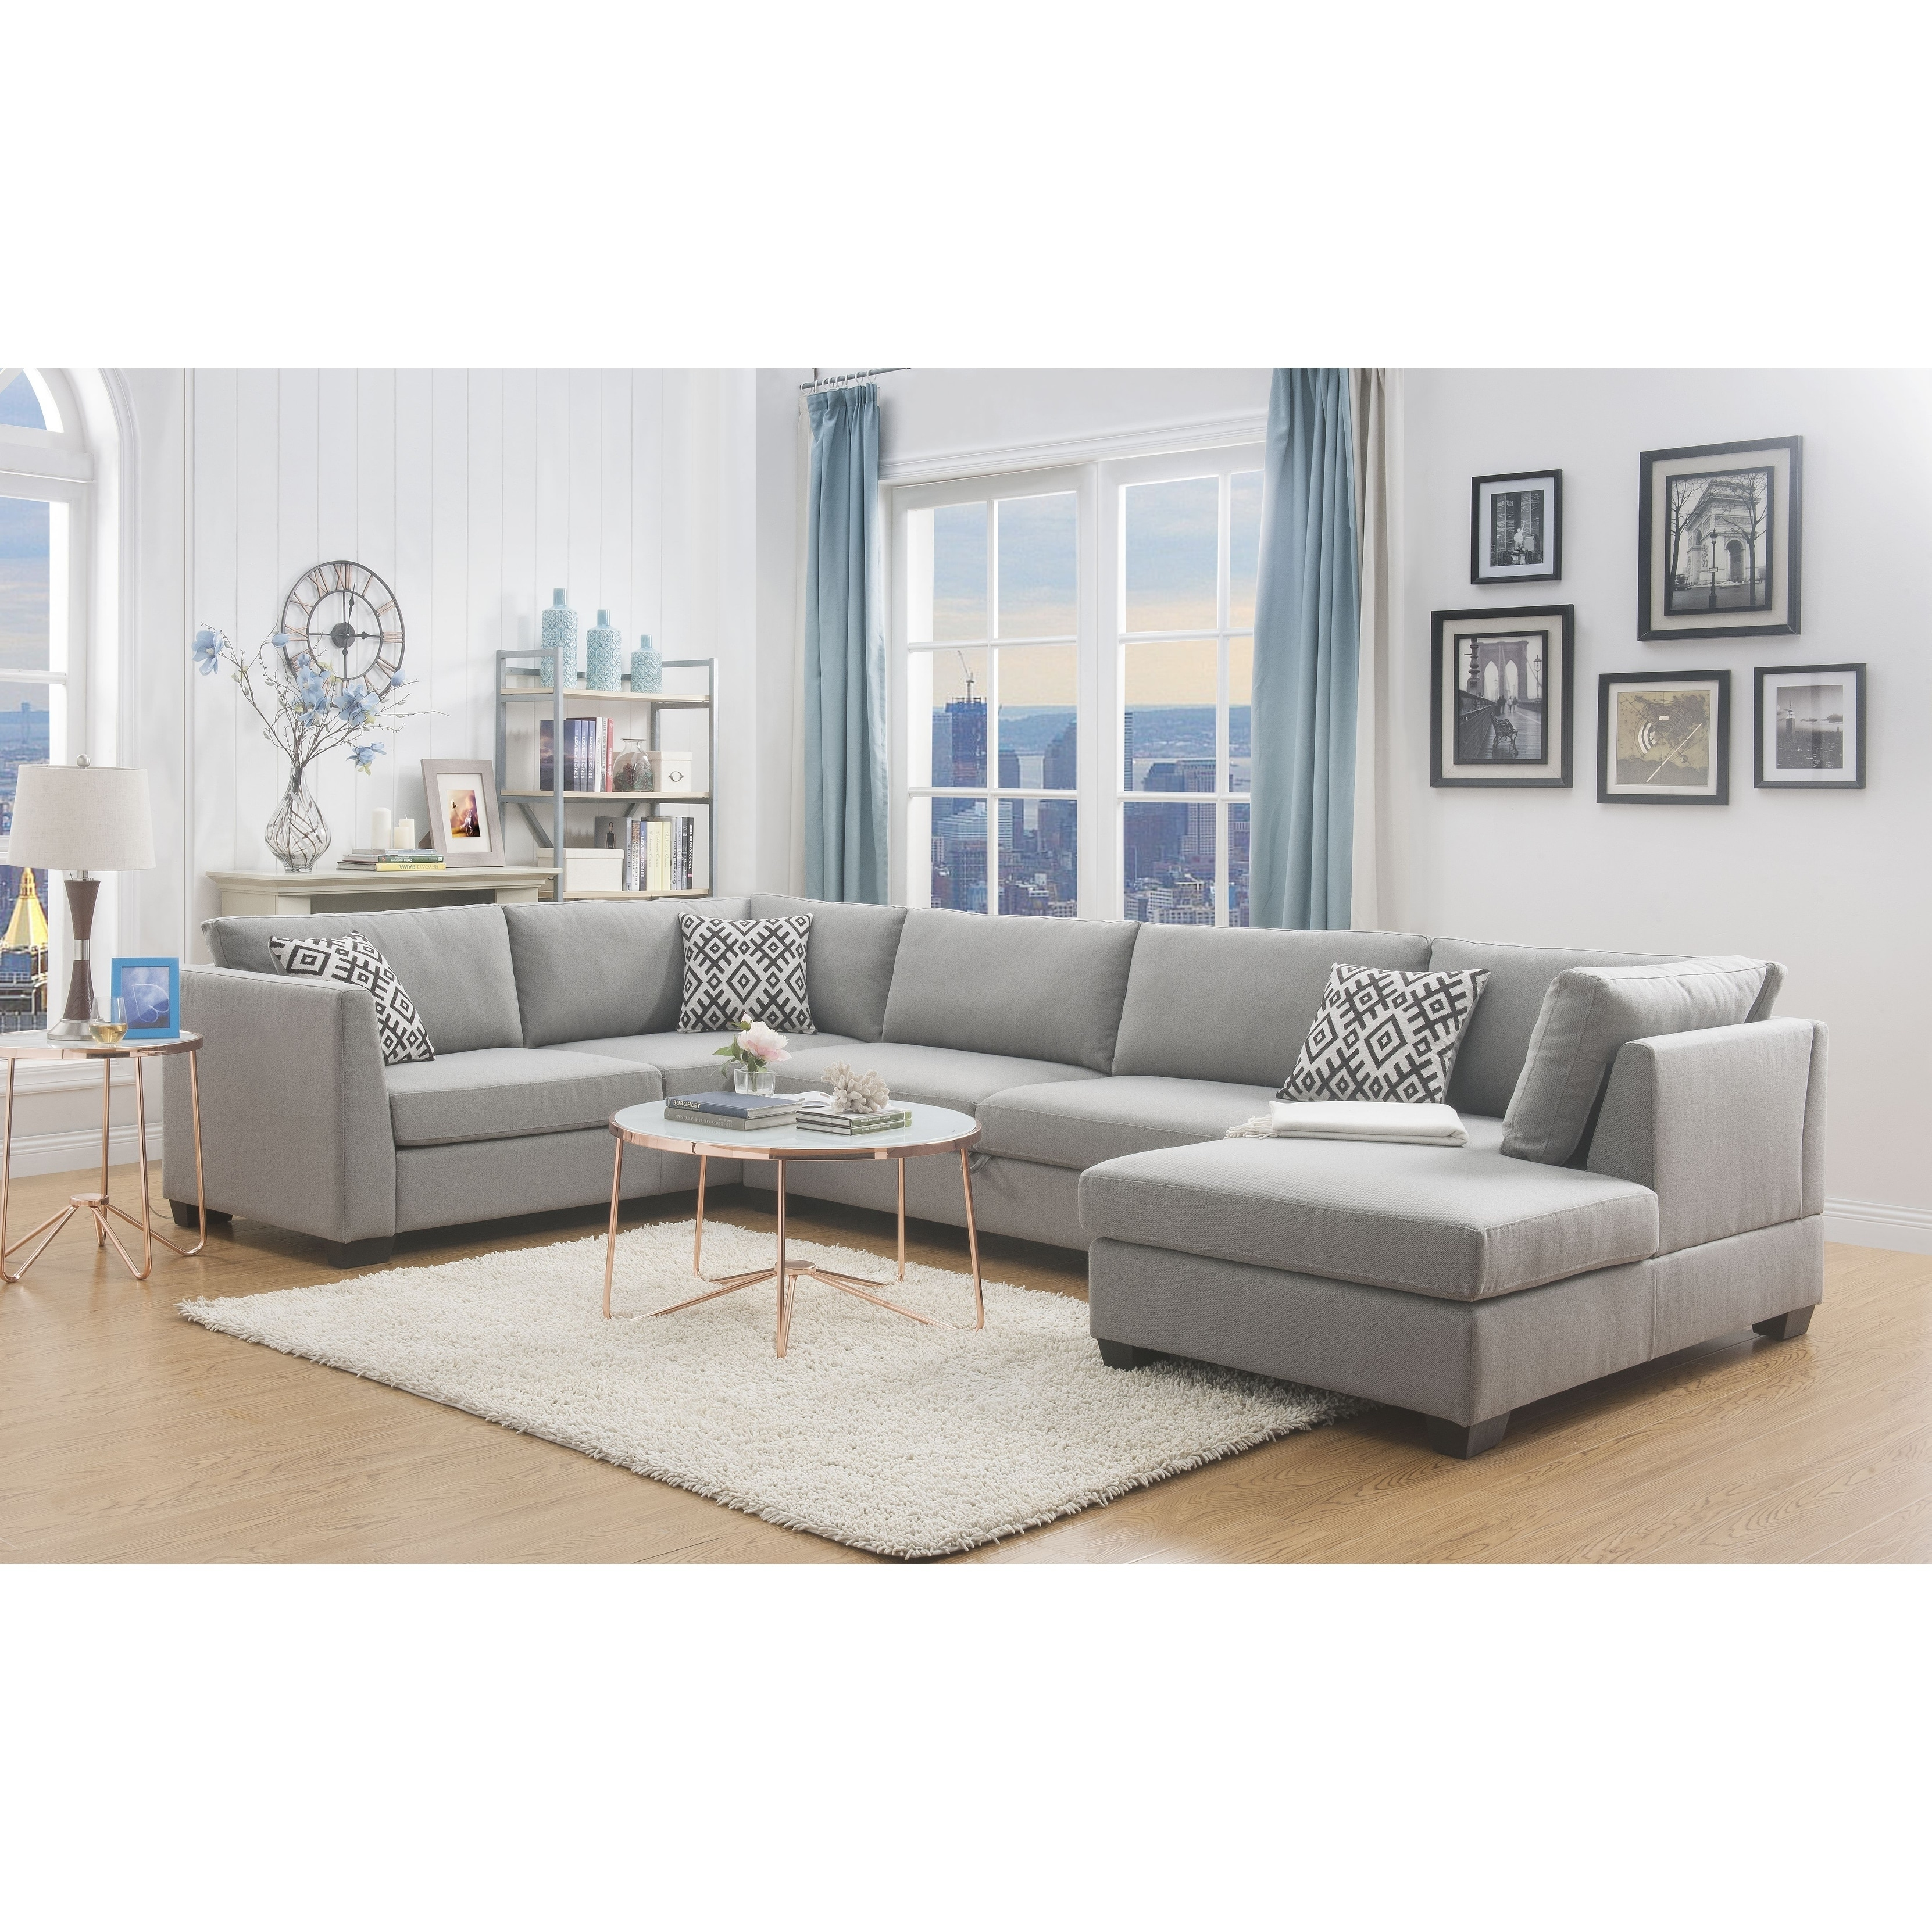 Shop acme cyclamen storage sectional sofa in grey linen free shipping today overstock com 22633249